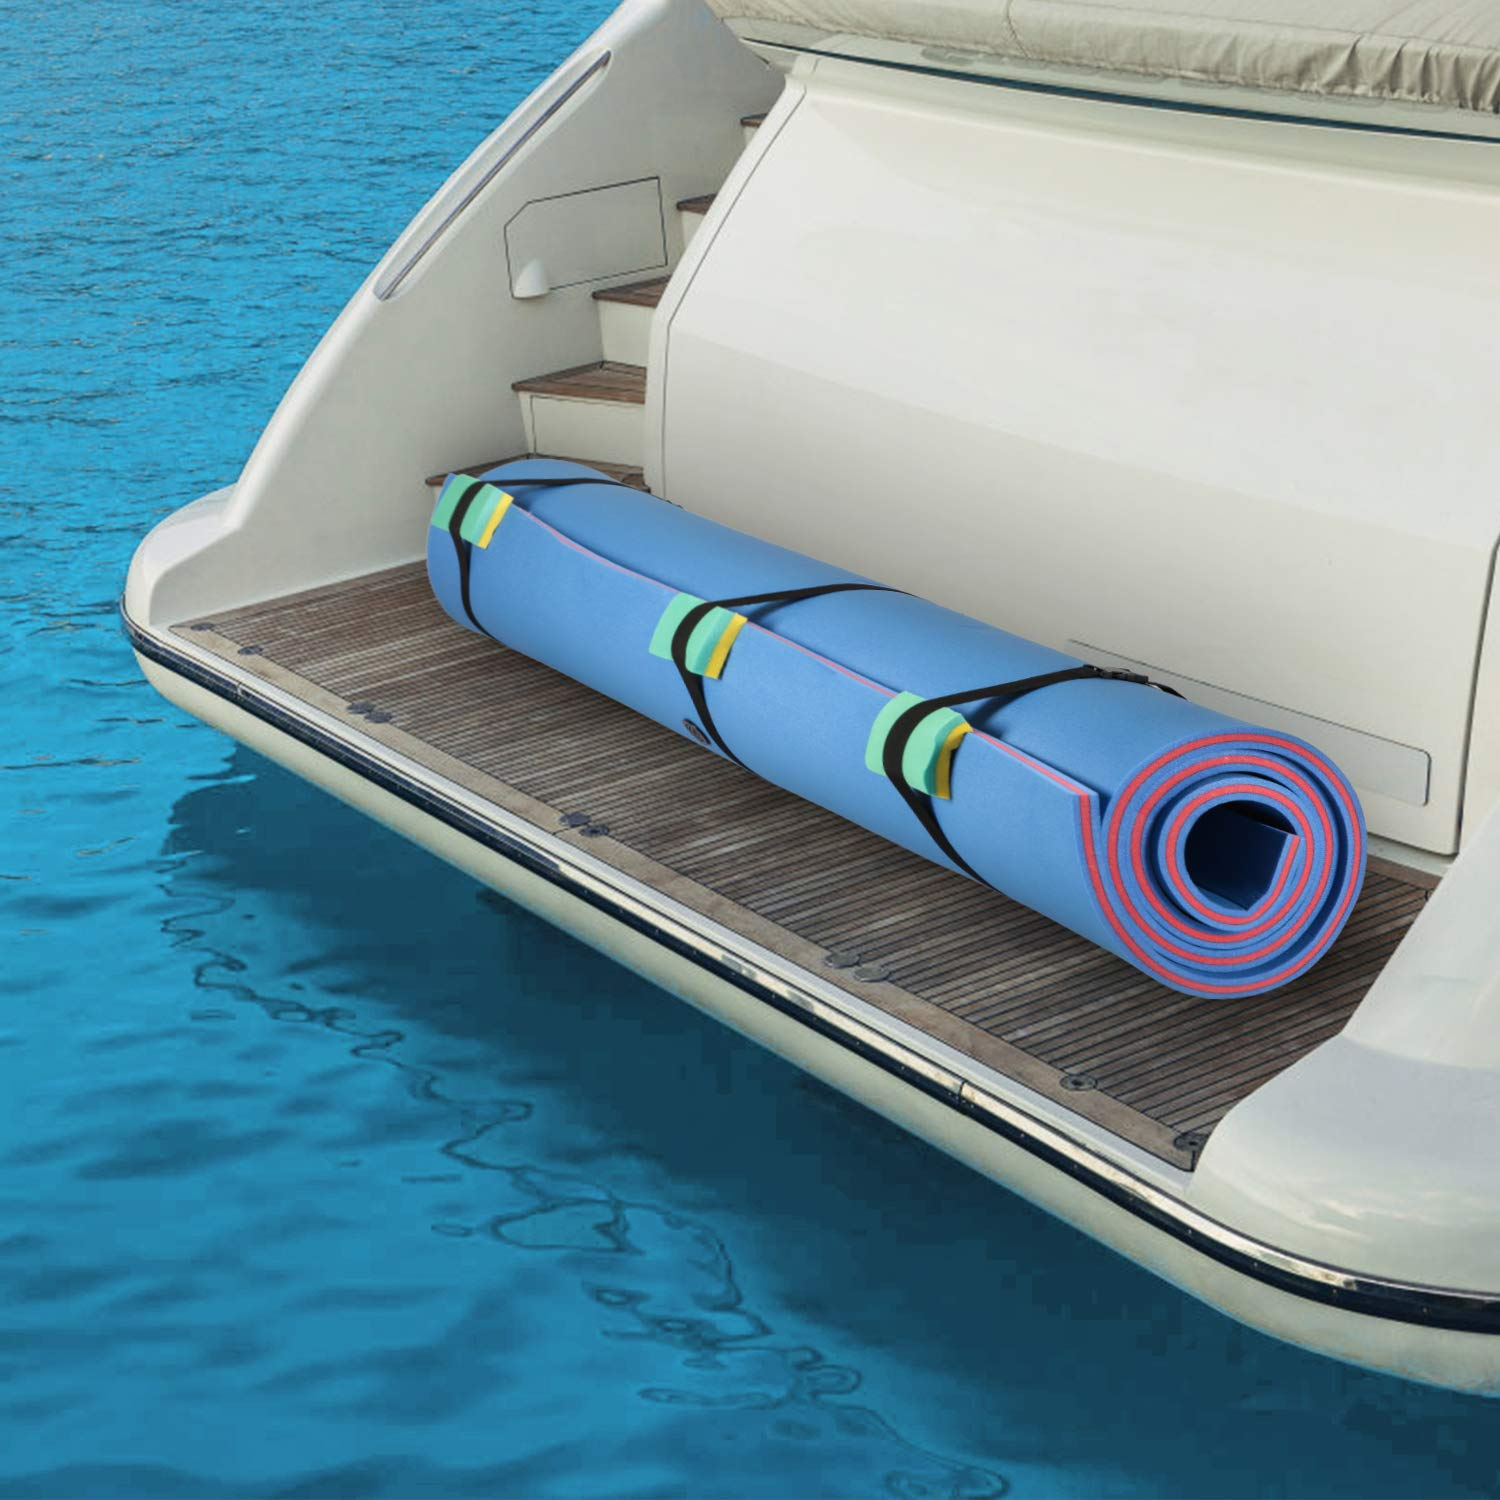 Superday Floating Water Mat Recreation Foam Pad Adults Kids Relax On Pool Lake&Ocean 9' x 6, Blue by Superday (Image #4)